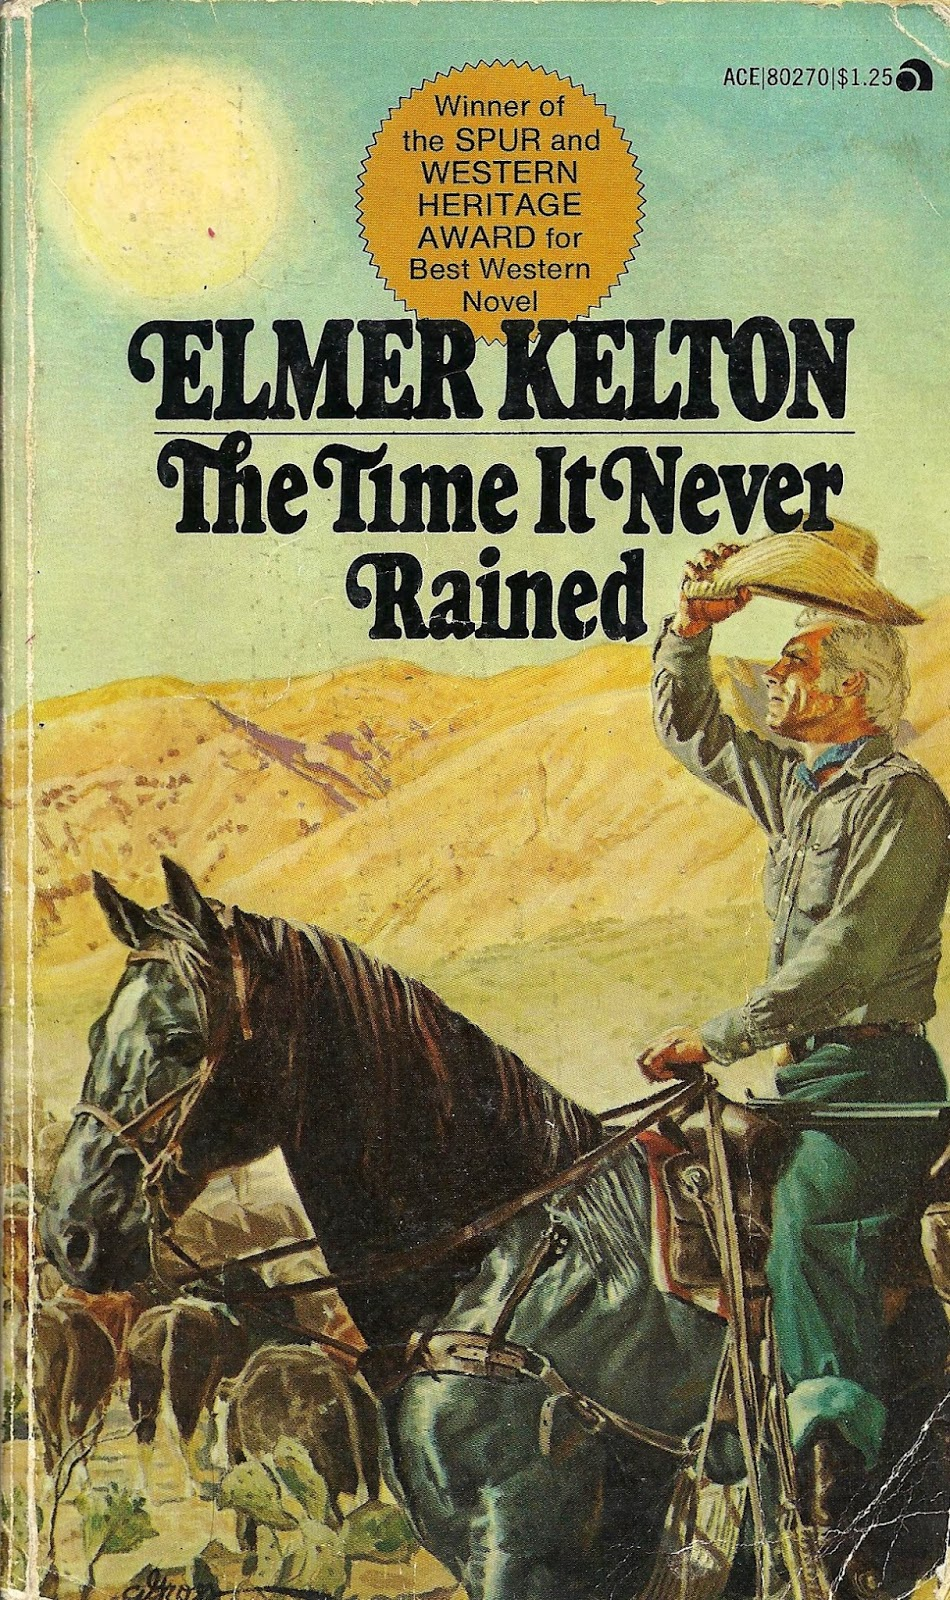 Novel cover of The Time It Never Rained by Elmer Kelton.